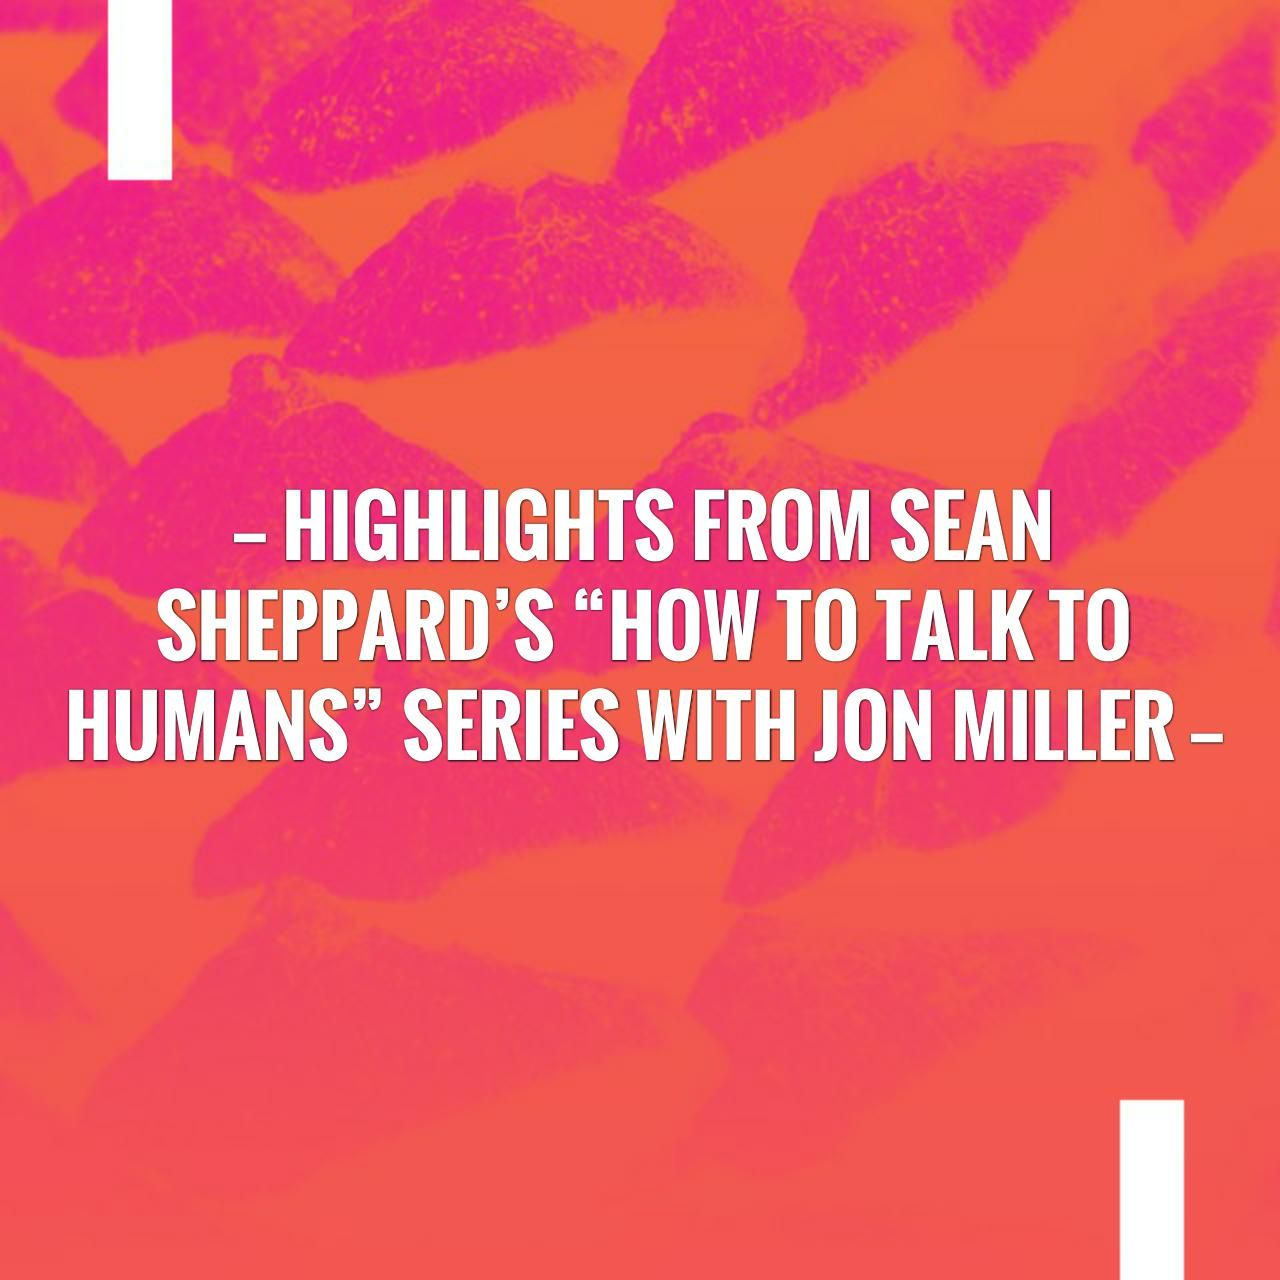 How To Talk to Humans with Sean Sheppard and Jon Miller